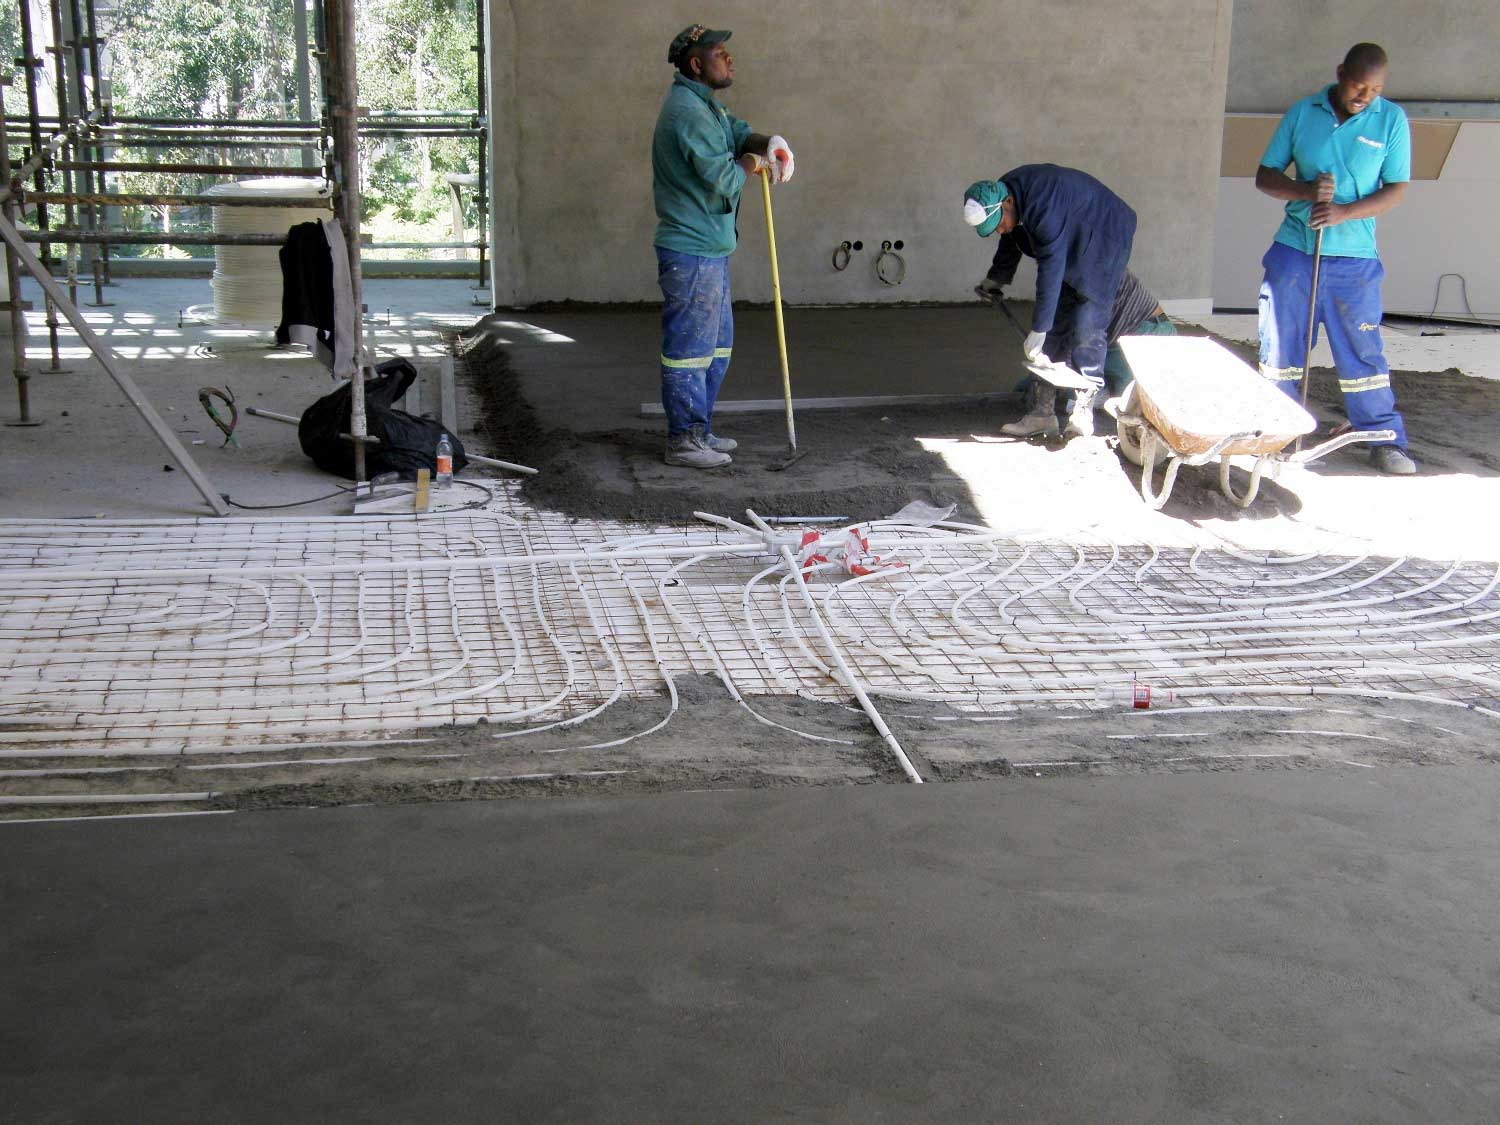 Viega Fonterra Hydronic Floor Heating And Cooling Installed In Automated Home